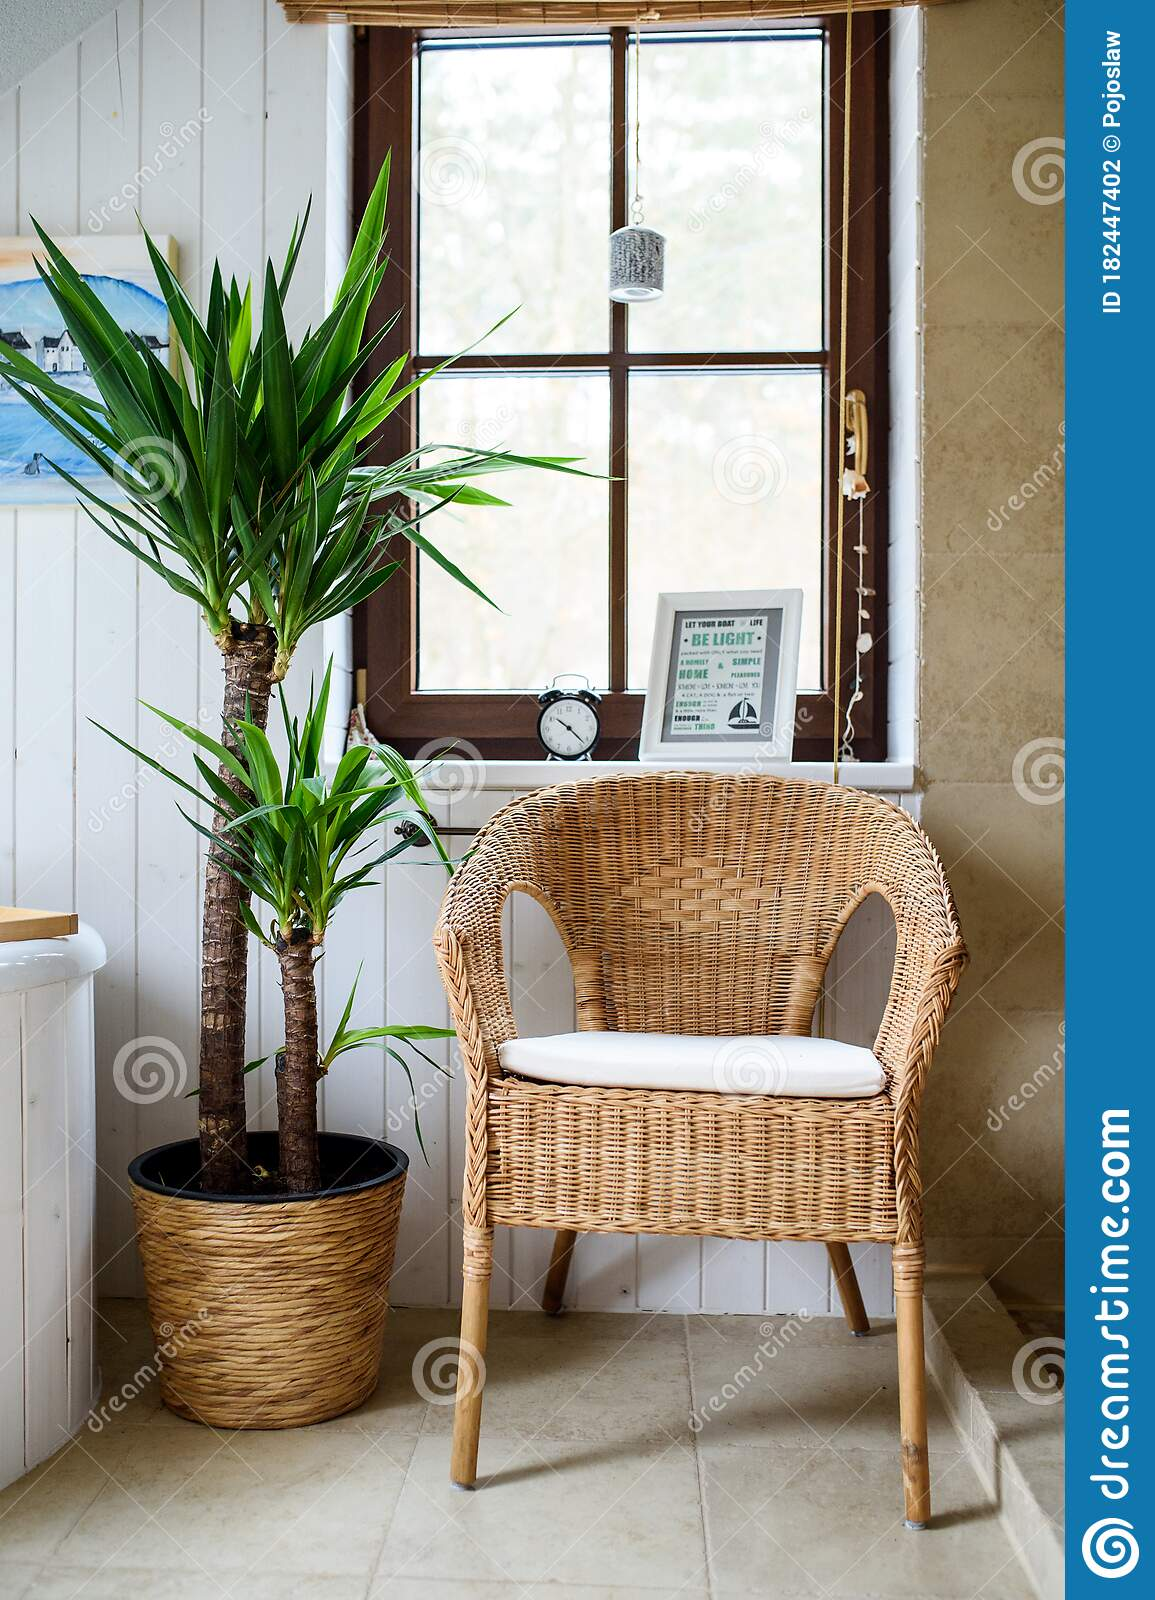 Potted Plant And Wicker Chair In Bathroom At Home. Stock Photo